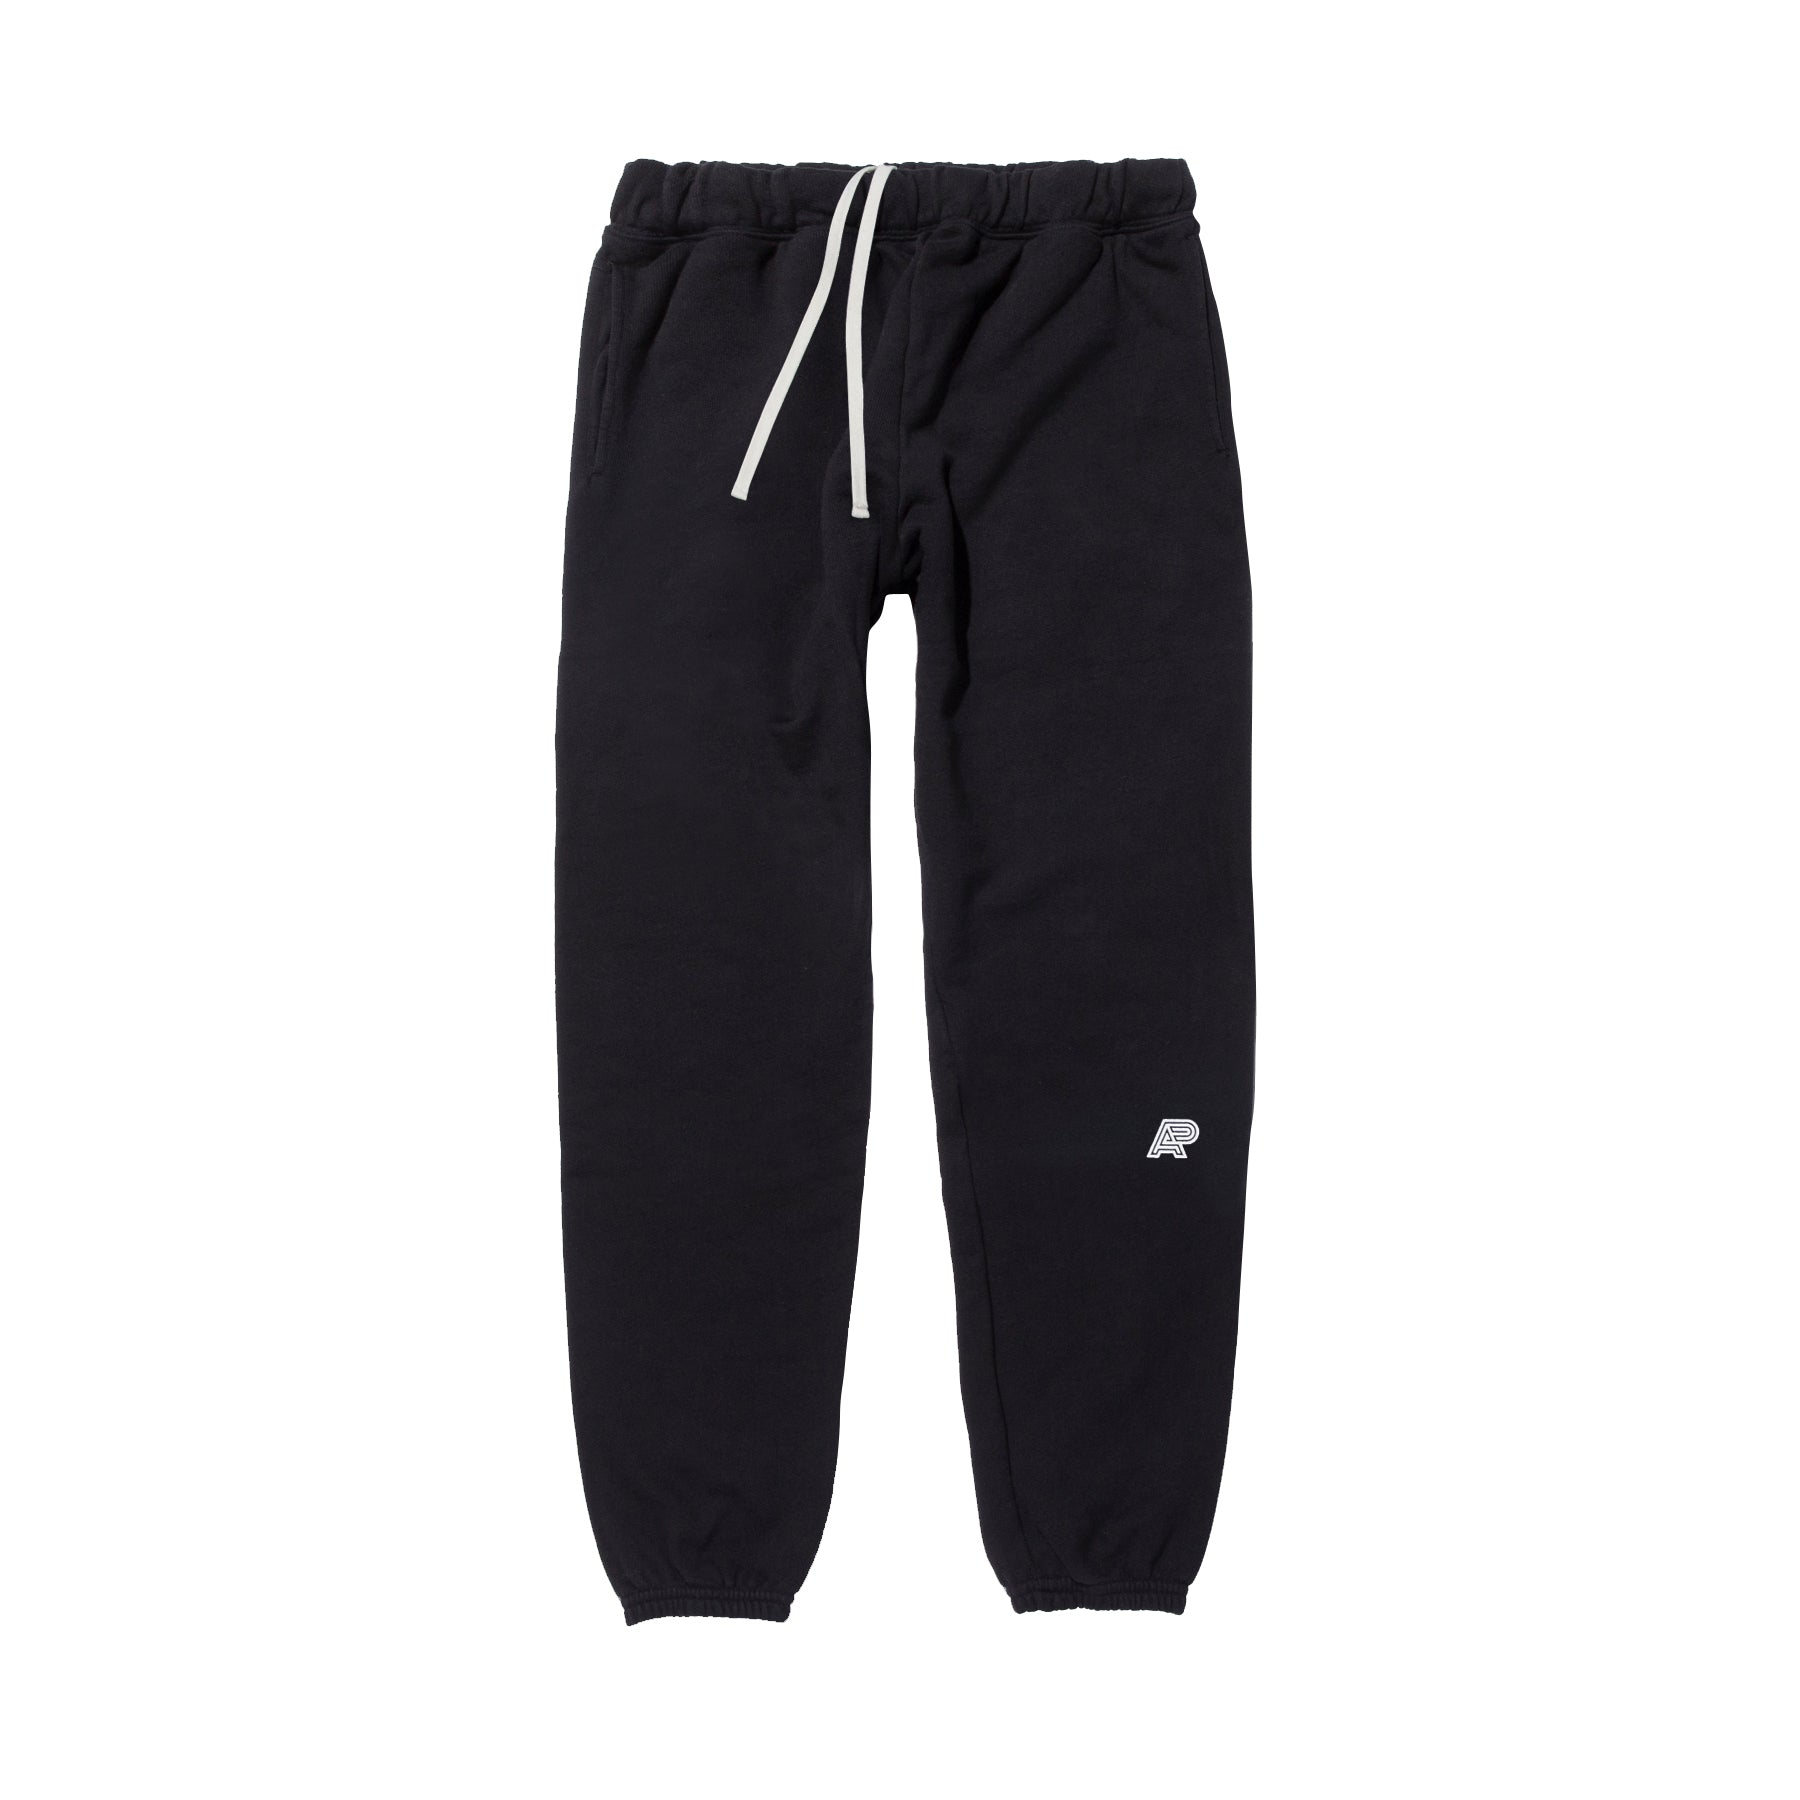 A&P TRENCH SWEATPANTS